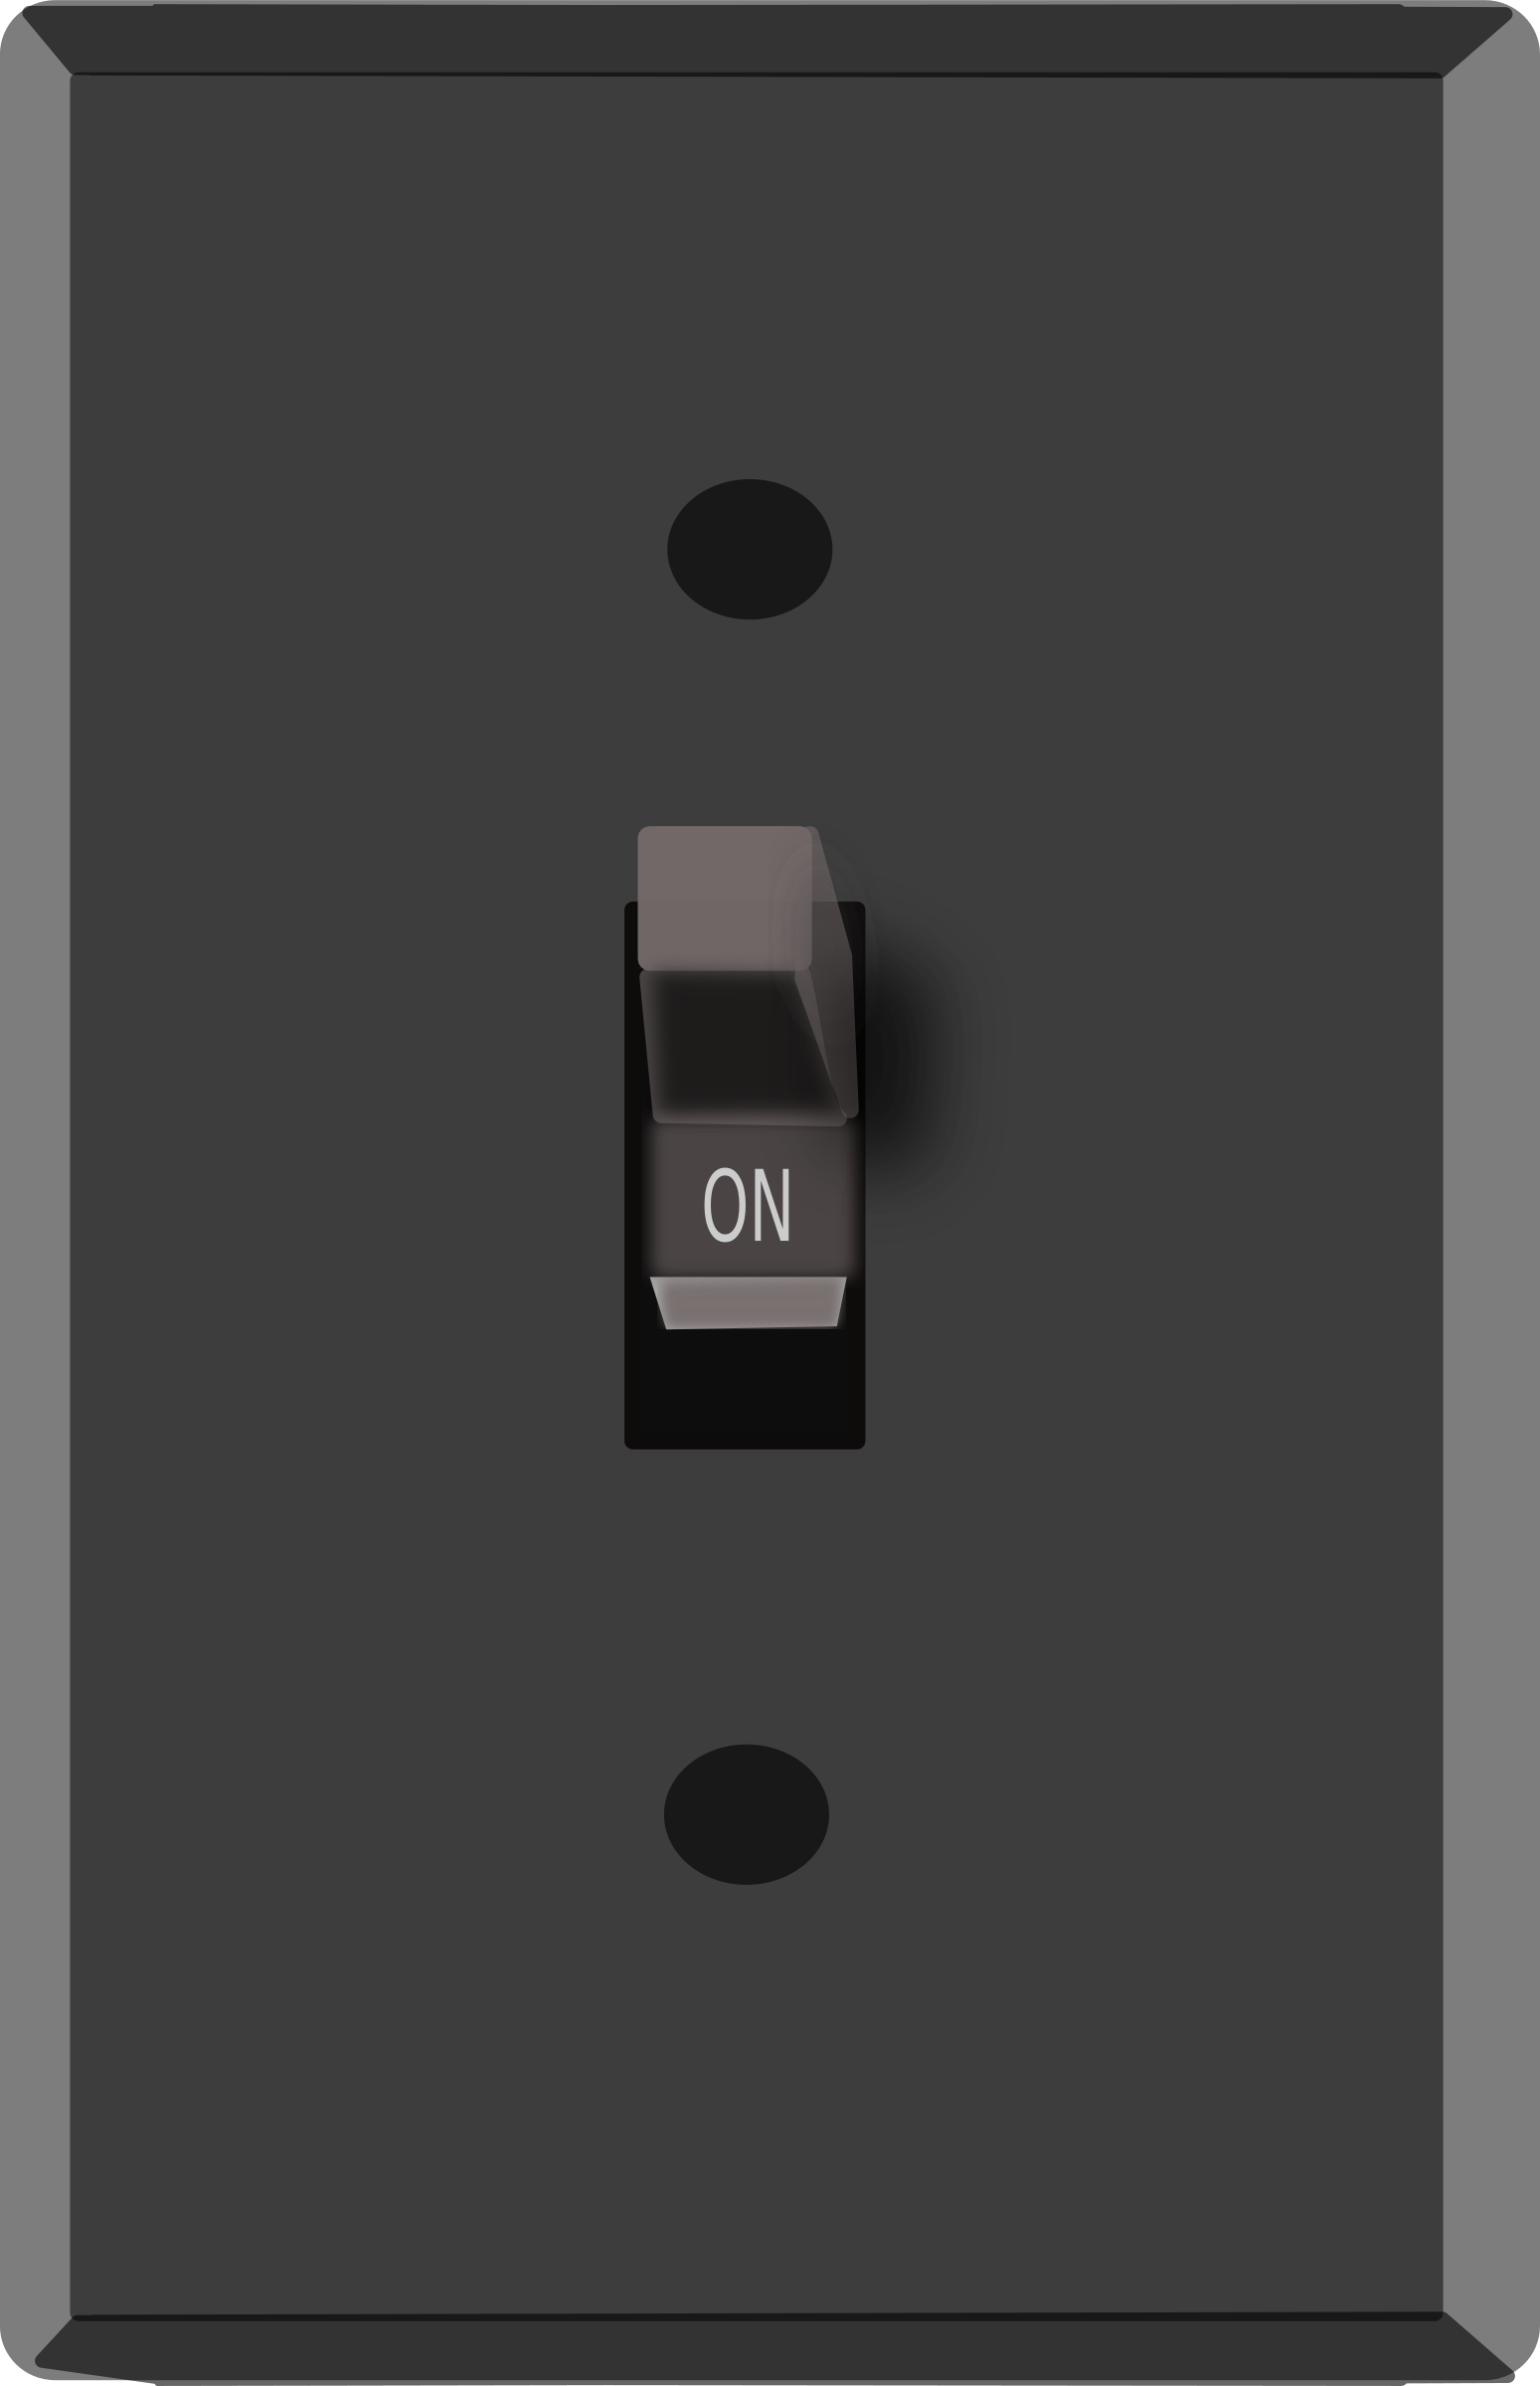 Turn gif to png. Clipart light switch on